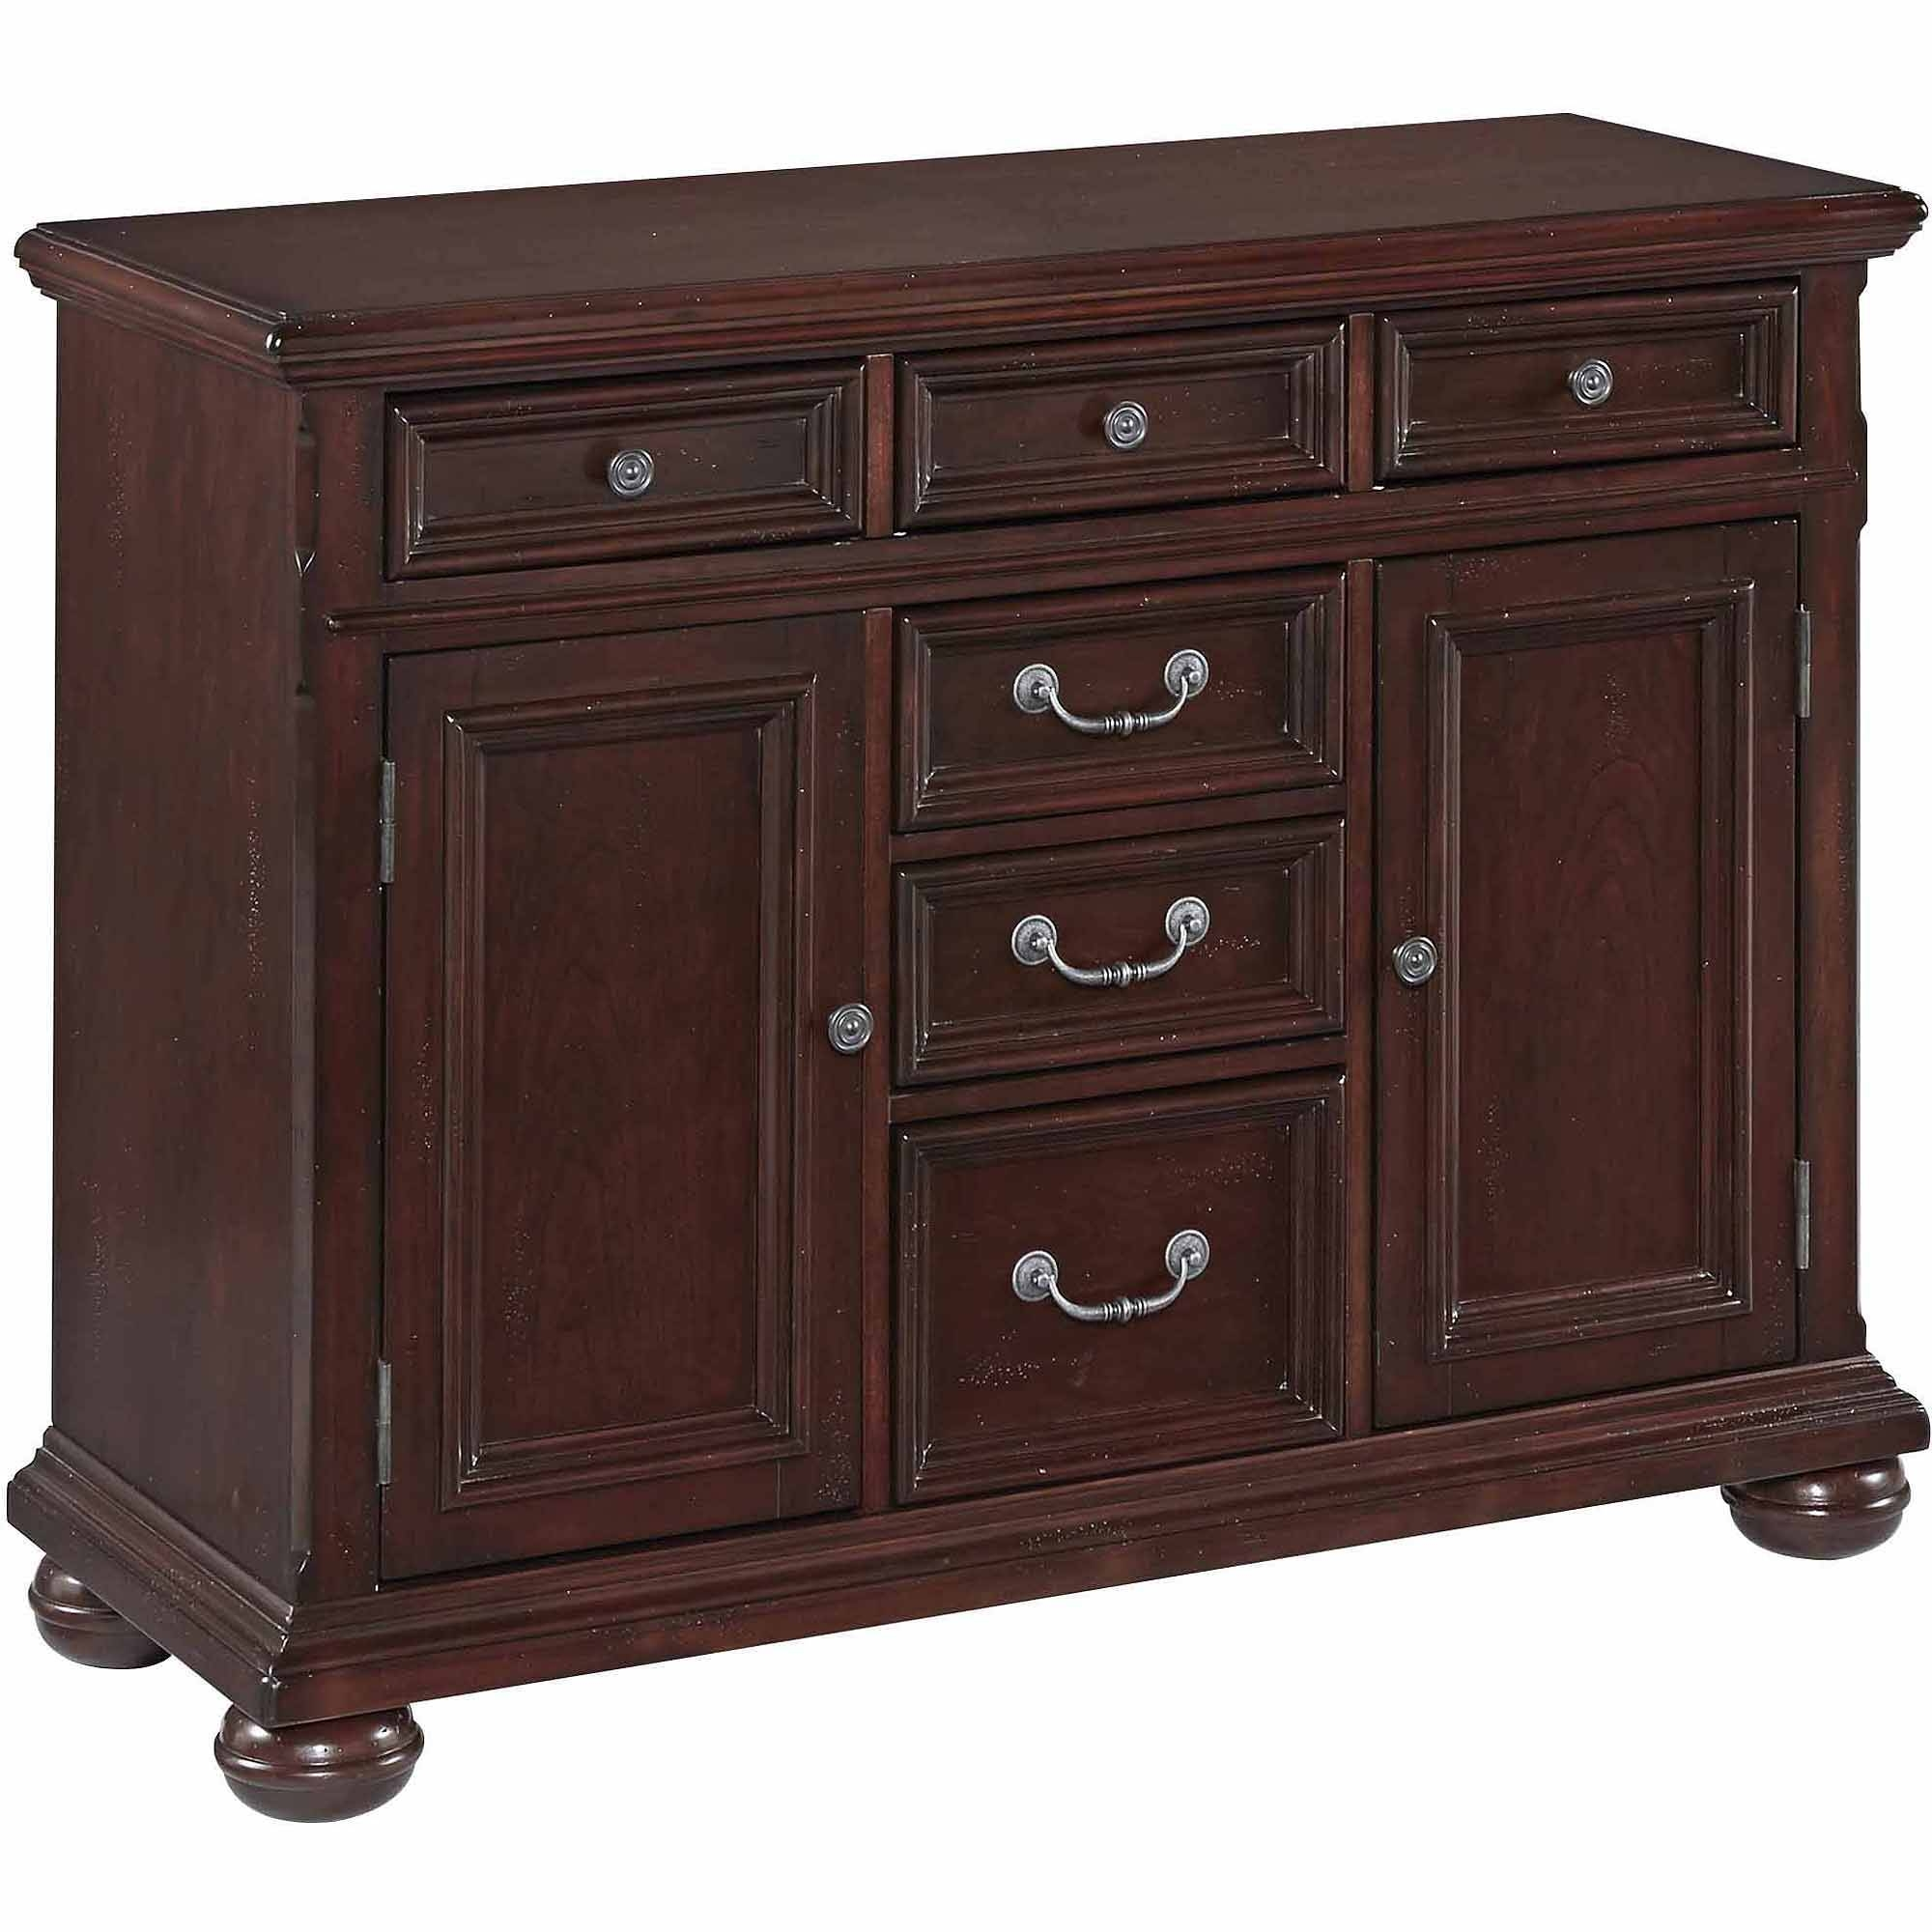 China Cabinet & Buffet Furniture : Kitchen & Dining Furniture in Free Standing Kitchen Sideboards (Image 6 of 30)